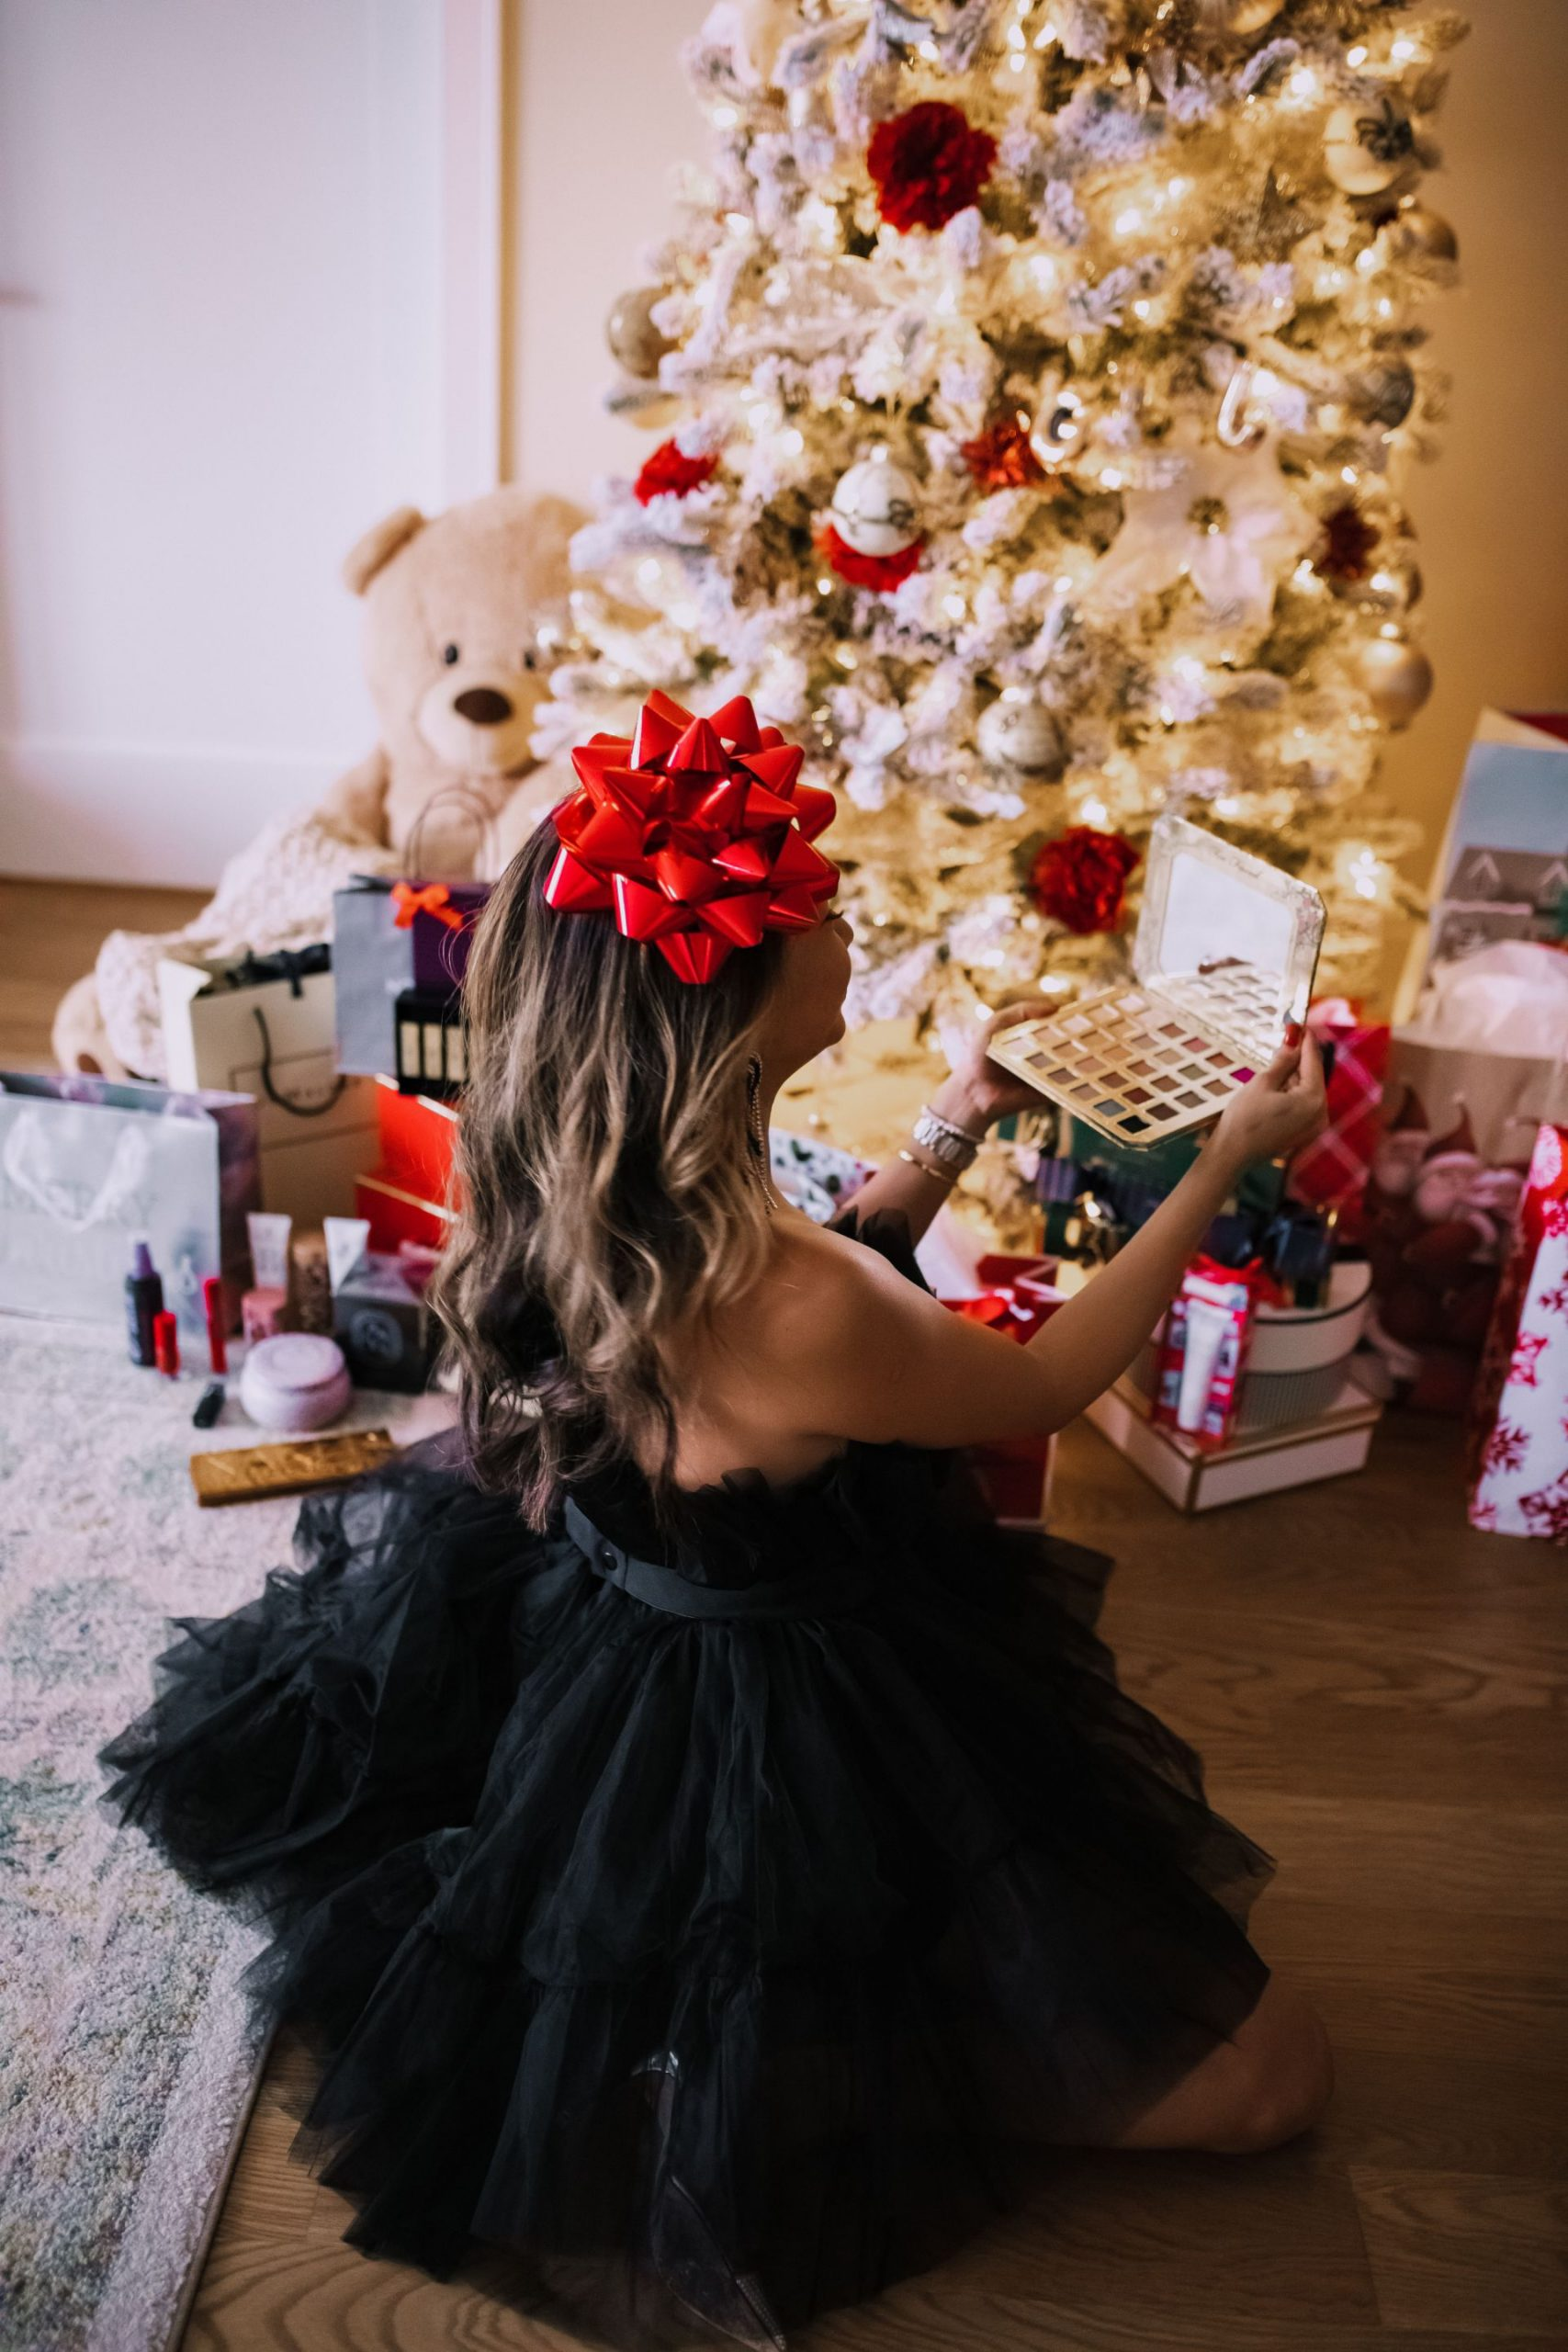 best beauty gifts from nordstrom, holiday beauty gifts from nordstrom under $100, beauty gift guide, best beauty gifts, gifts for the beauty lover, holiday gifts for the beauty lover, gifts for mom, gifts for her, gift guide for her, holiday gift ideas, gift ideas under $100, best gifts under $100, holiday decor, cute holiday decor, Jennifer Worman, Red Soles and Red Wine